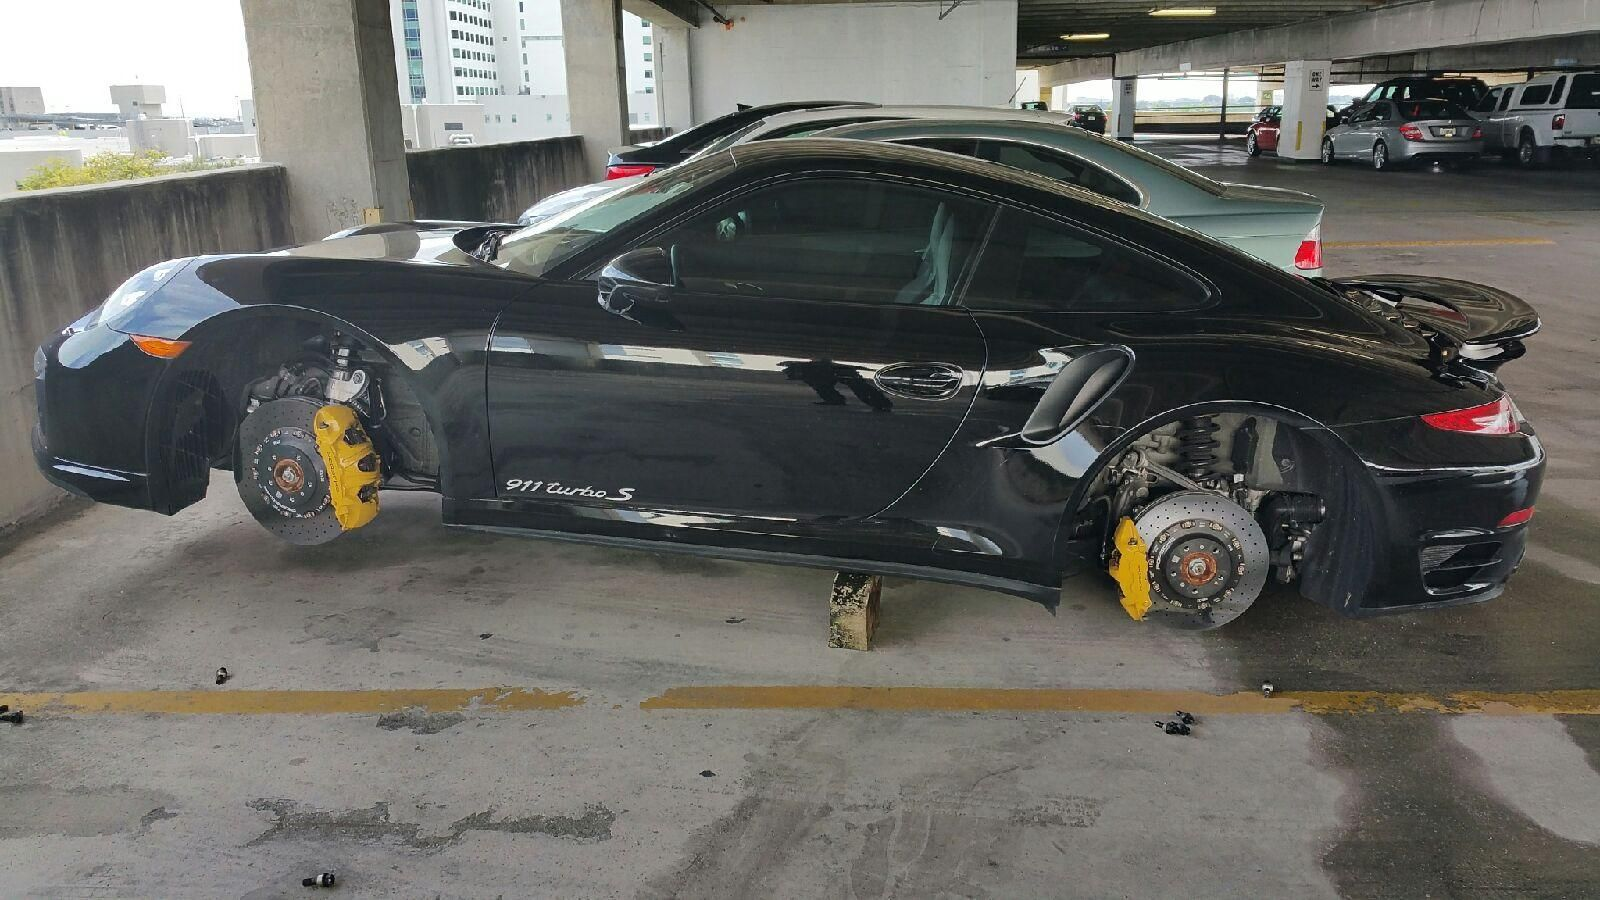 Porsche 911 Turbo S Wheels Stolen in Florida Hospital's Parking Lot